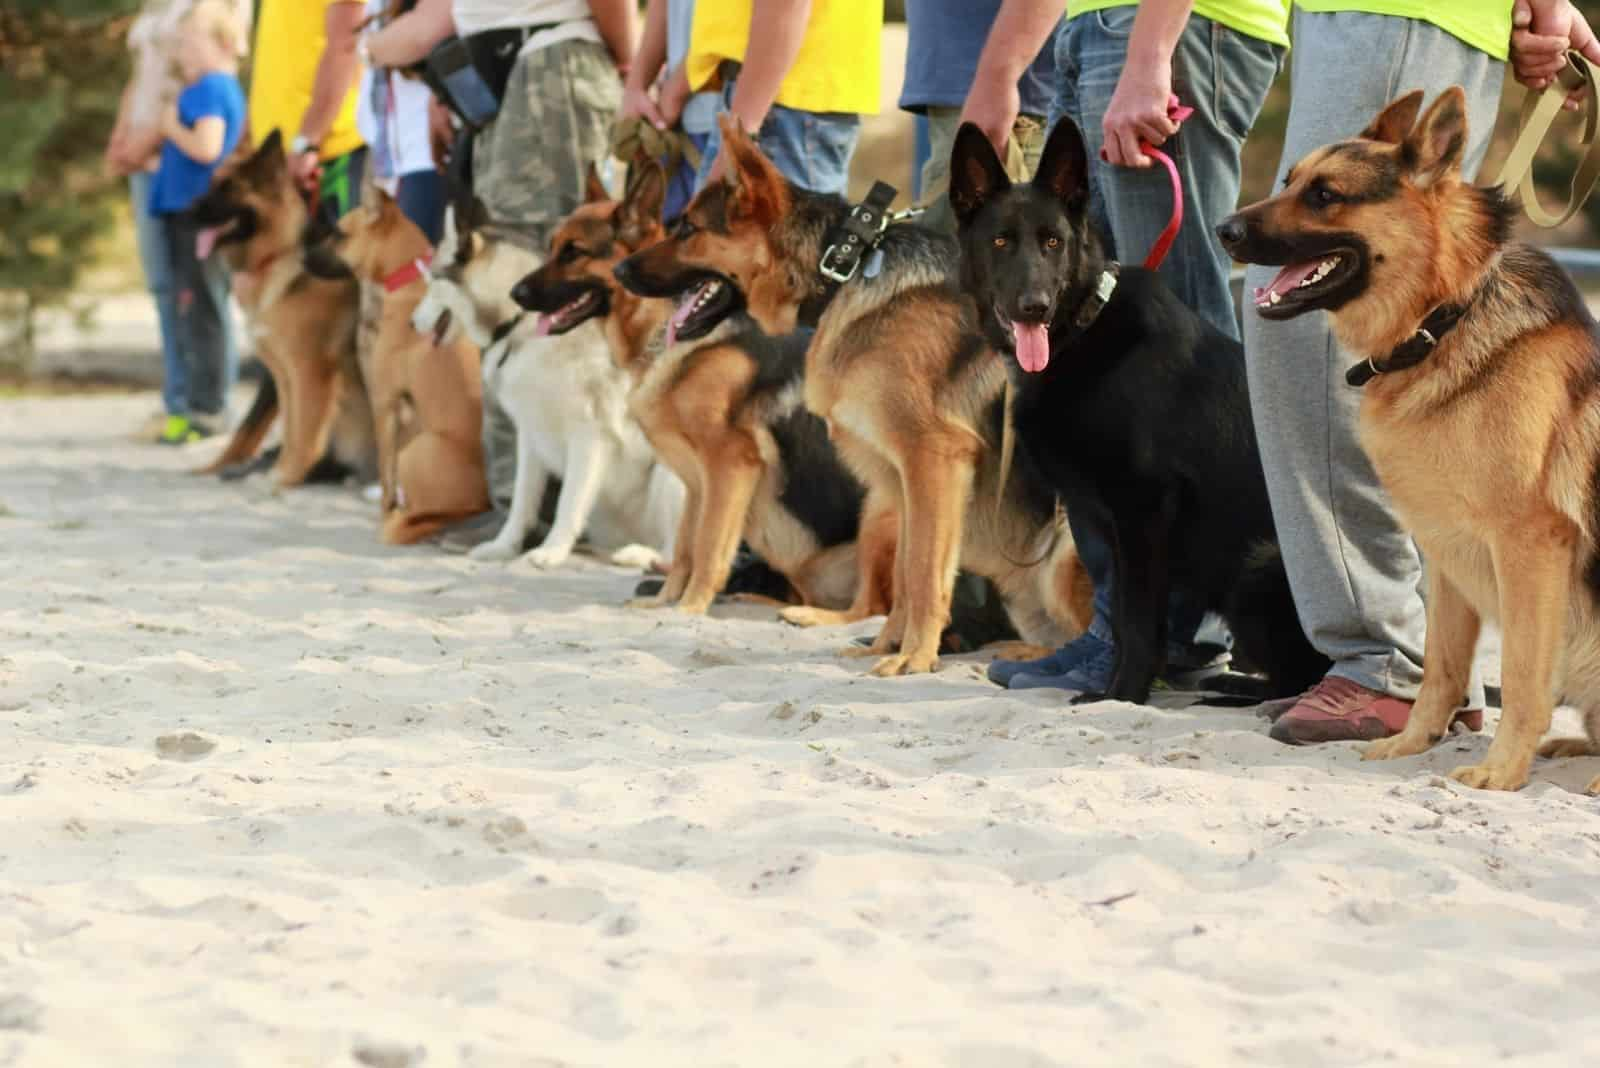 Row of german shepherd dogs on leashes next to their owners at the dog's exhibition